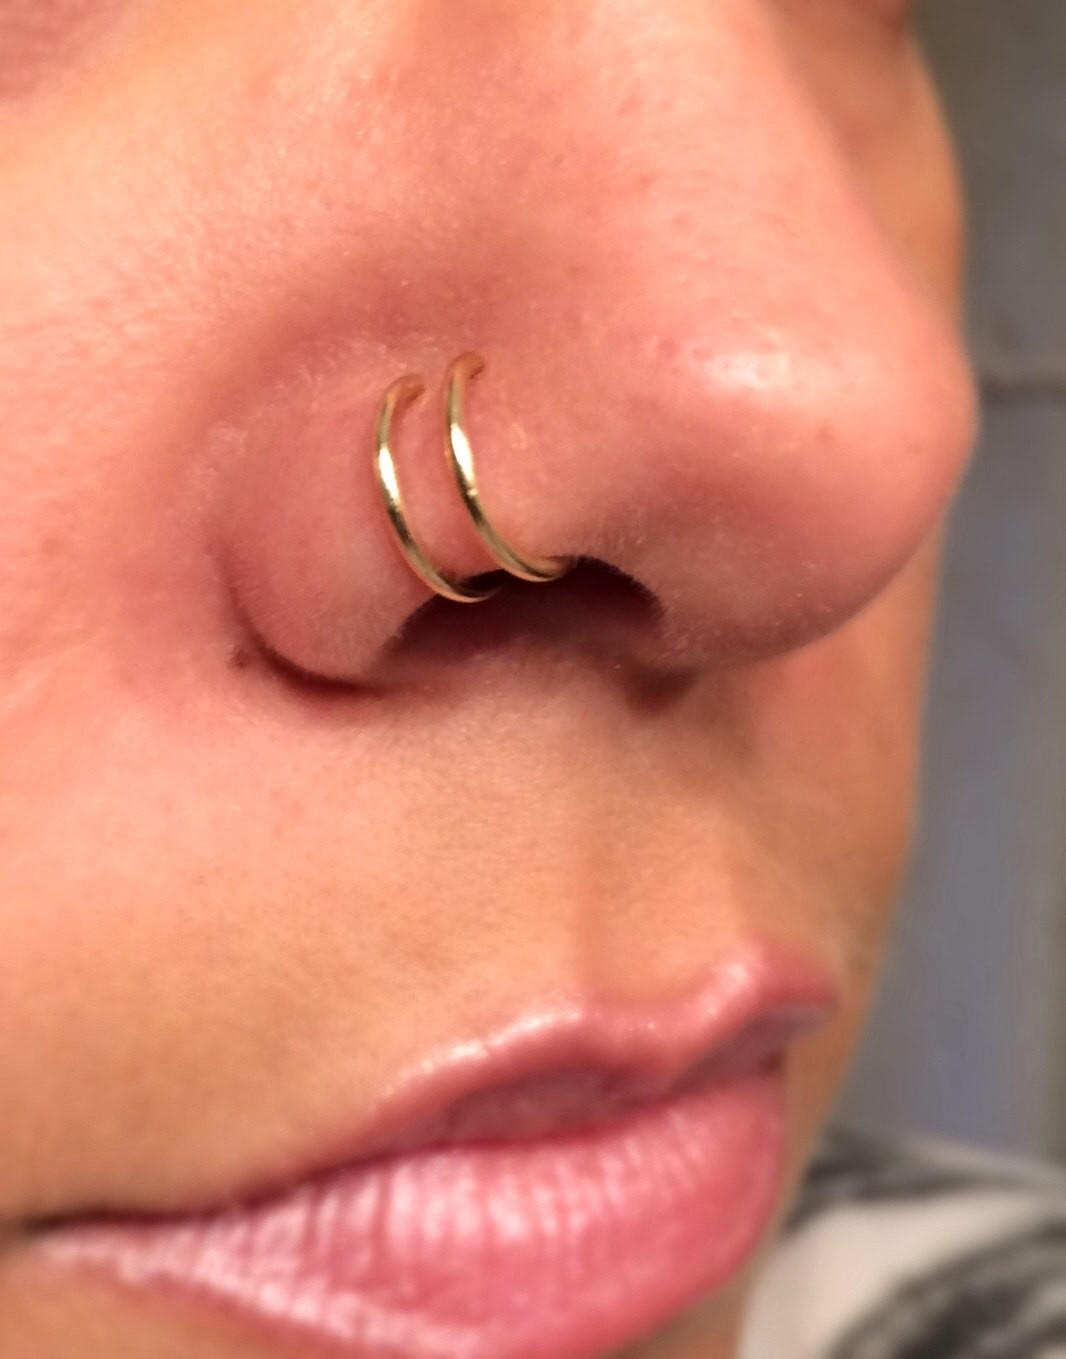 18 Gauge Gold Double Nose Ring Lip Ring From Junylie With Regard To Most Recent Chevron Nose Rings (View 8 of 15)